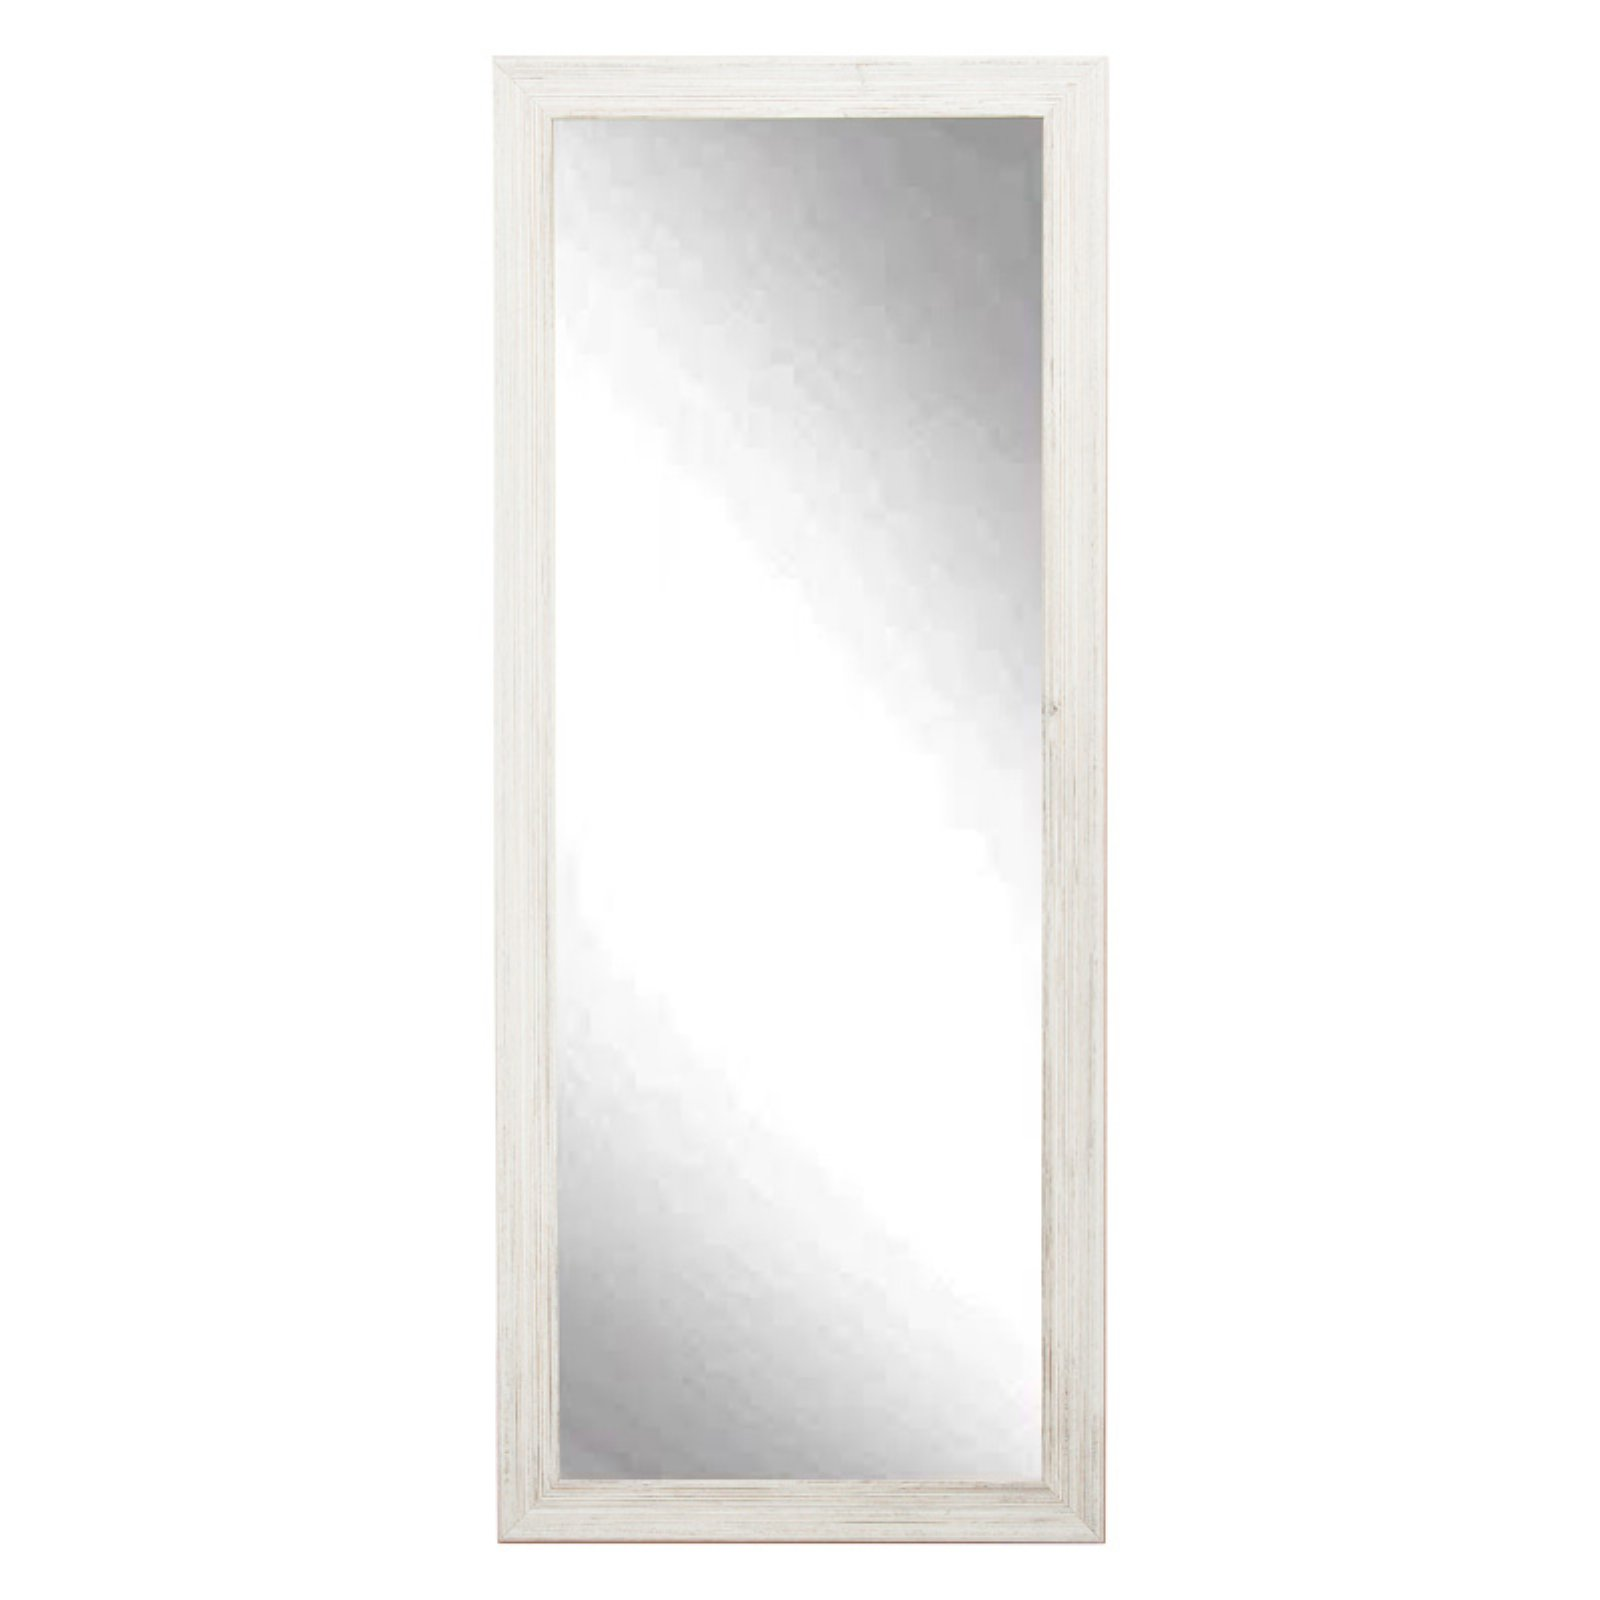 BrandtWorks Designers Choice Leaning Floor Mirror White by Brandt Works LLC